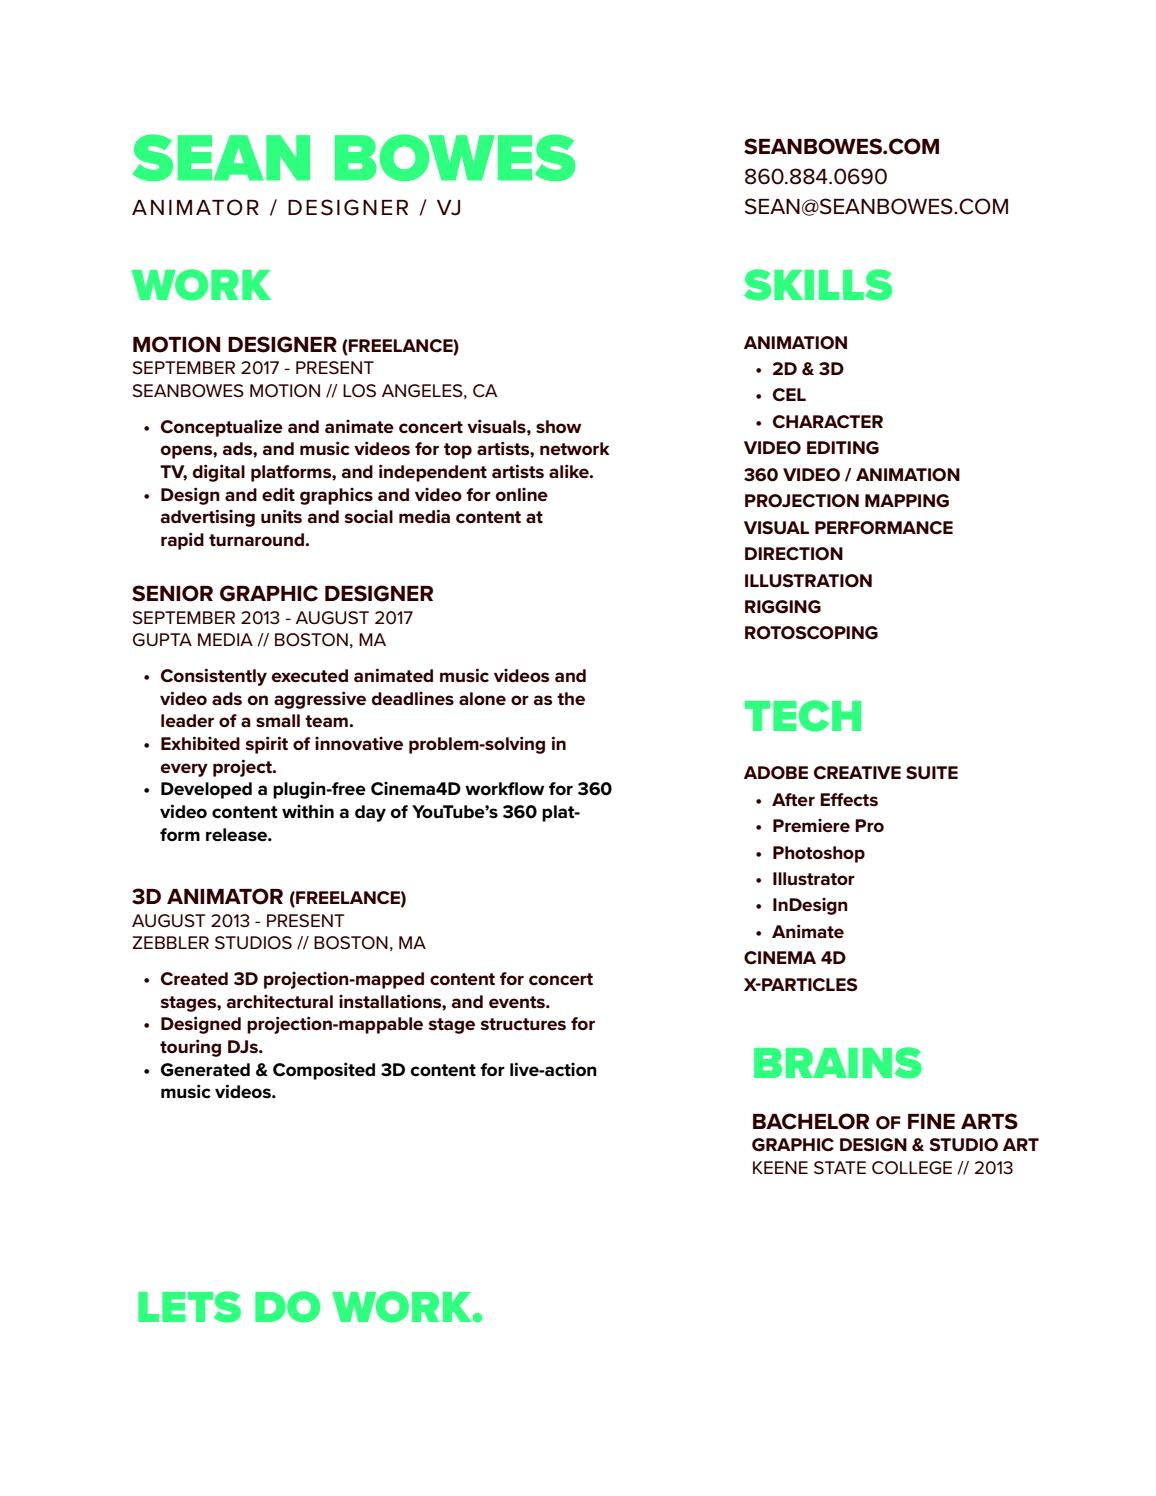 Sean Bowes Resume by seanbowes - issuu